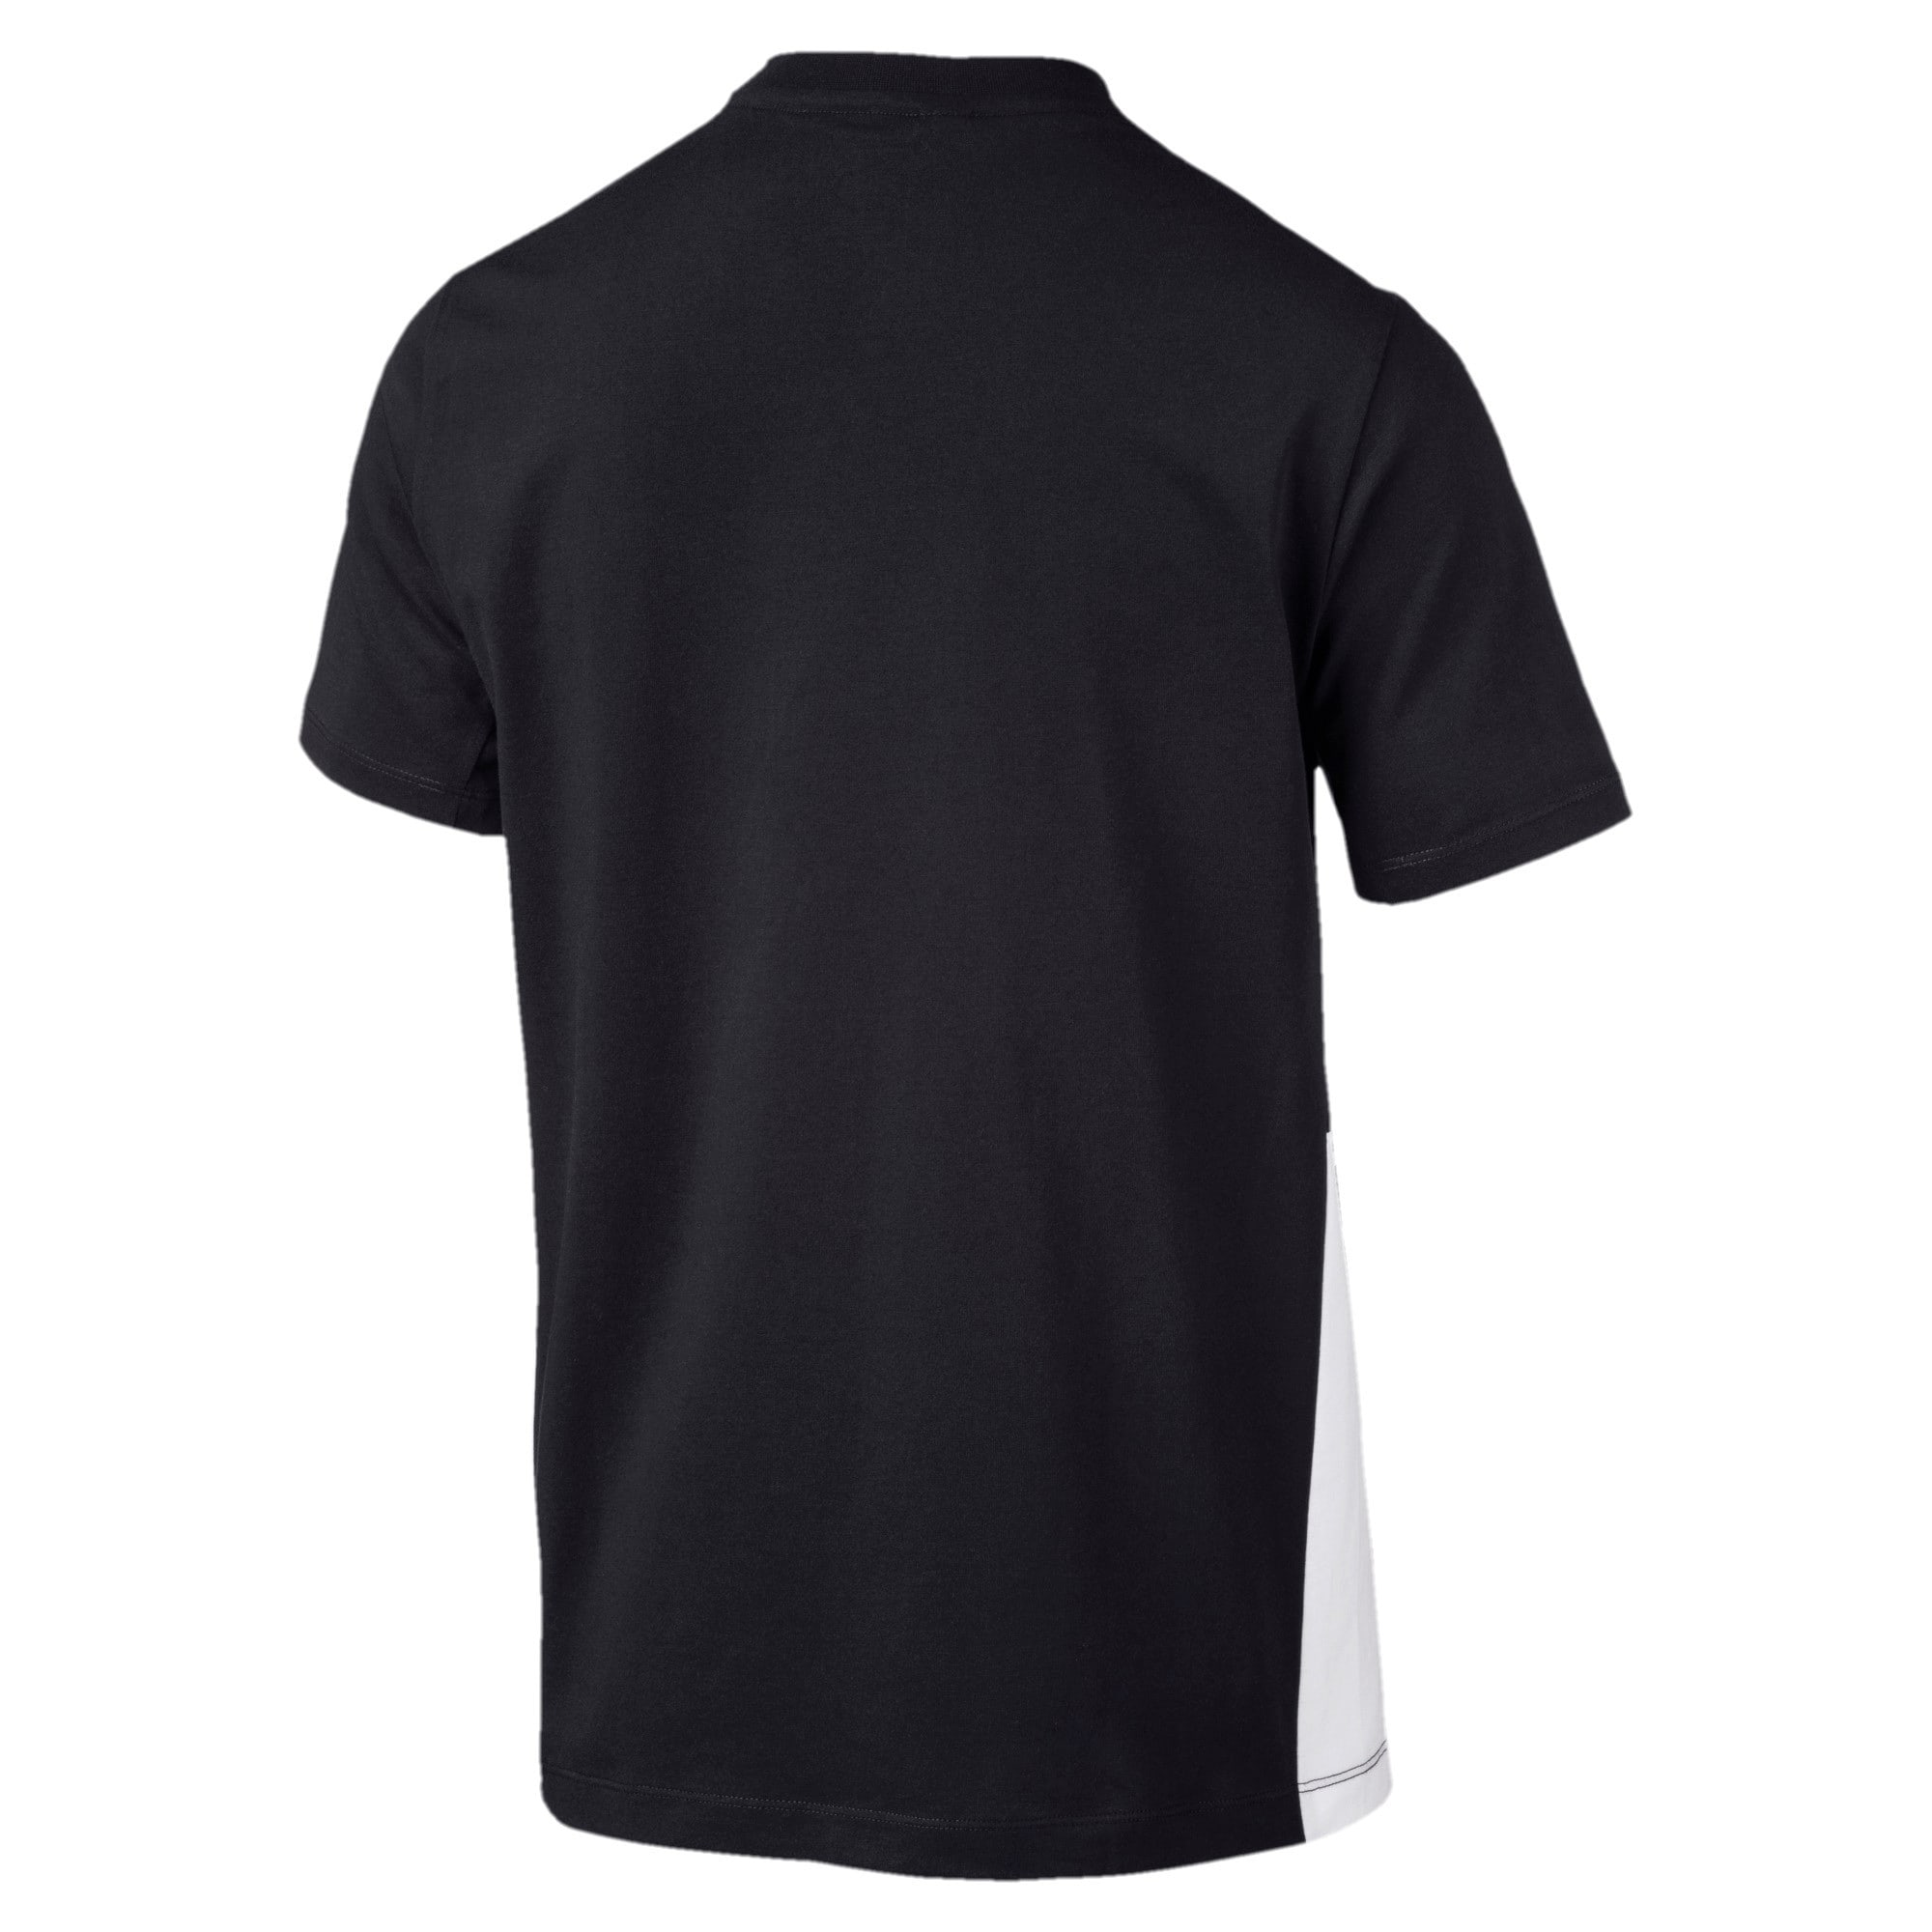 Thumbnail 4 of BMW MMS Graphic Tee 2, Anthracite, medium-IND